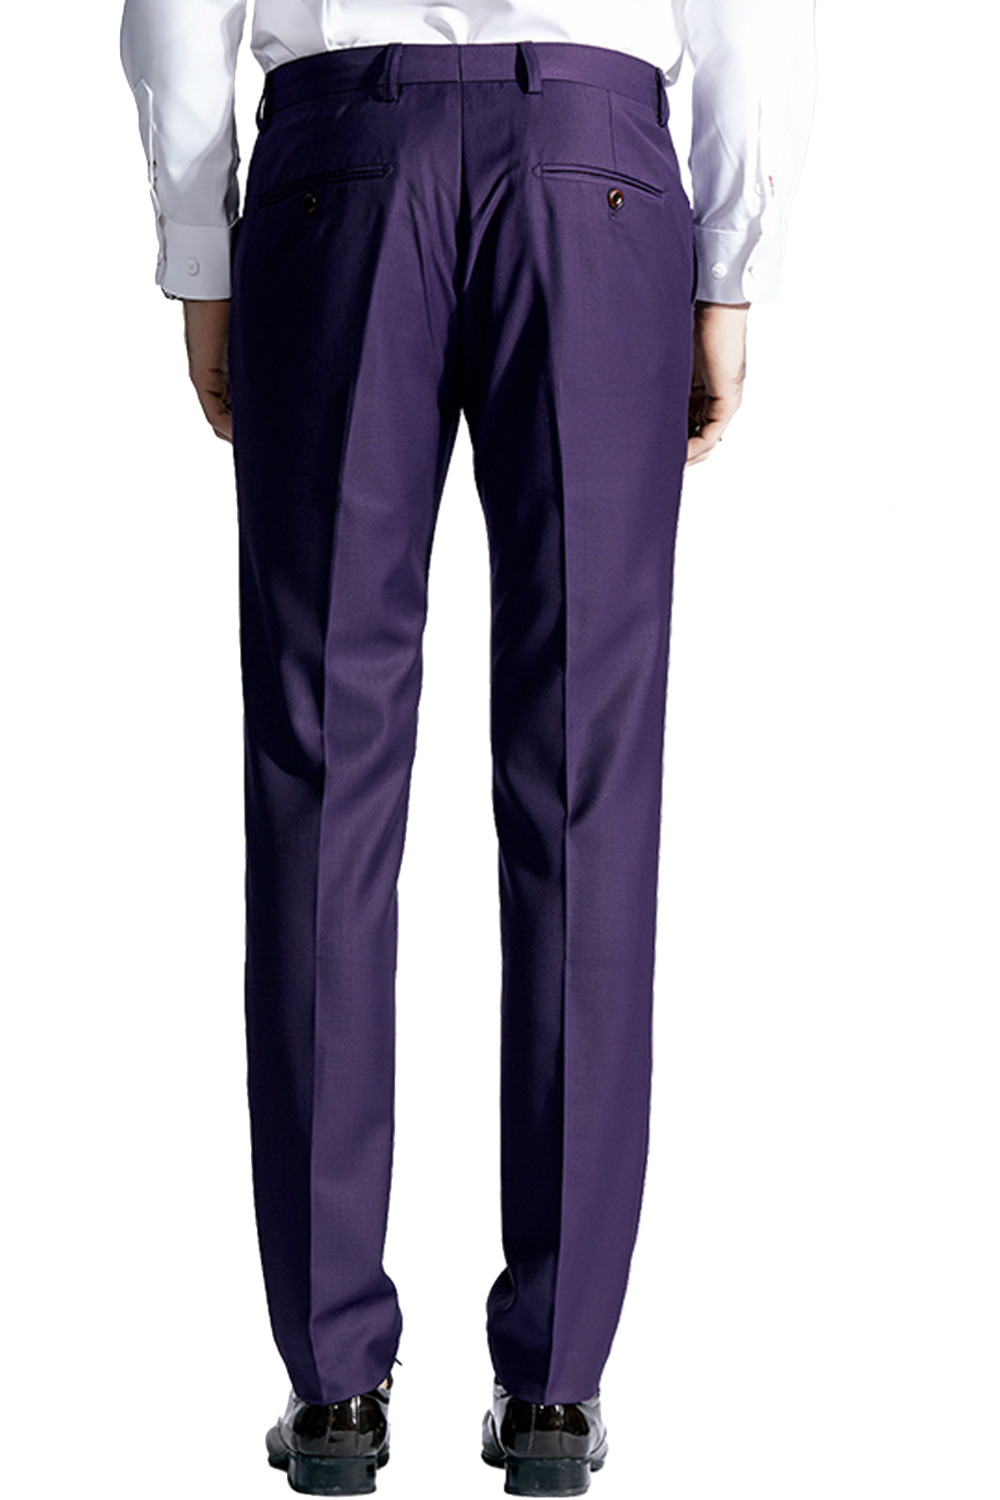 Buy dress pants